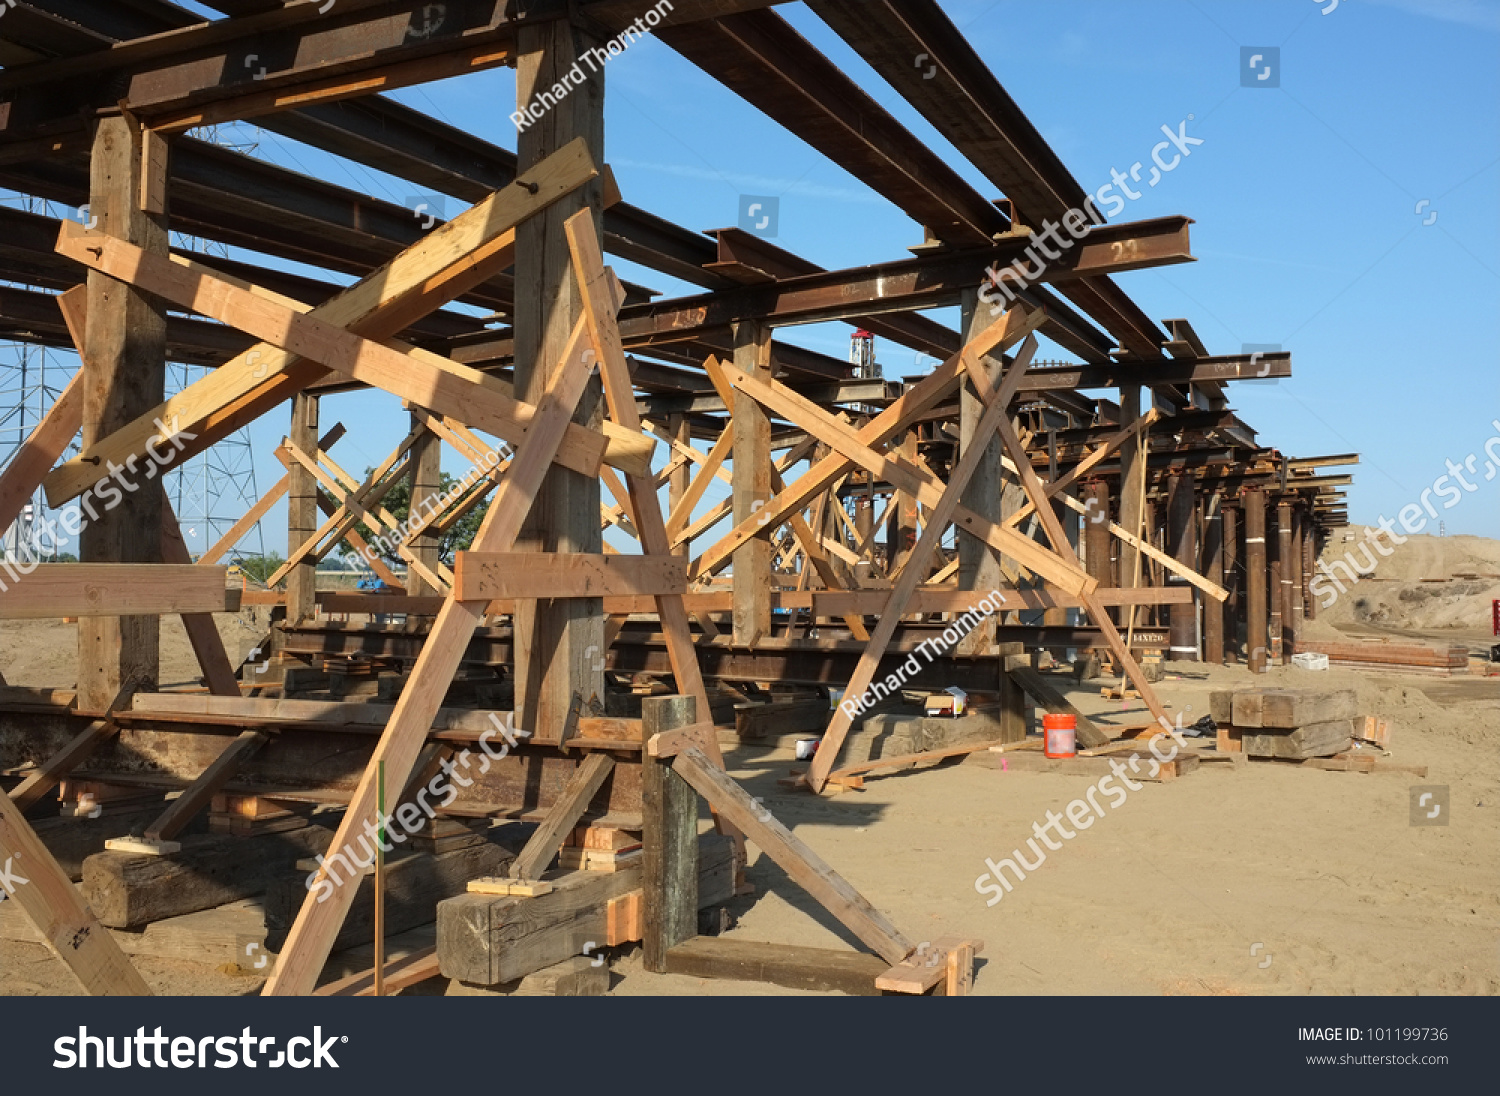 Portable Bridge Construction : Bridge construction project temporary wood bracing and